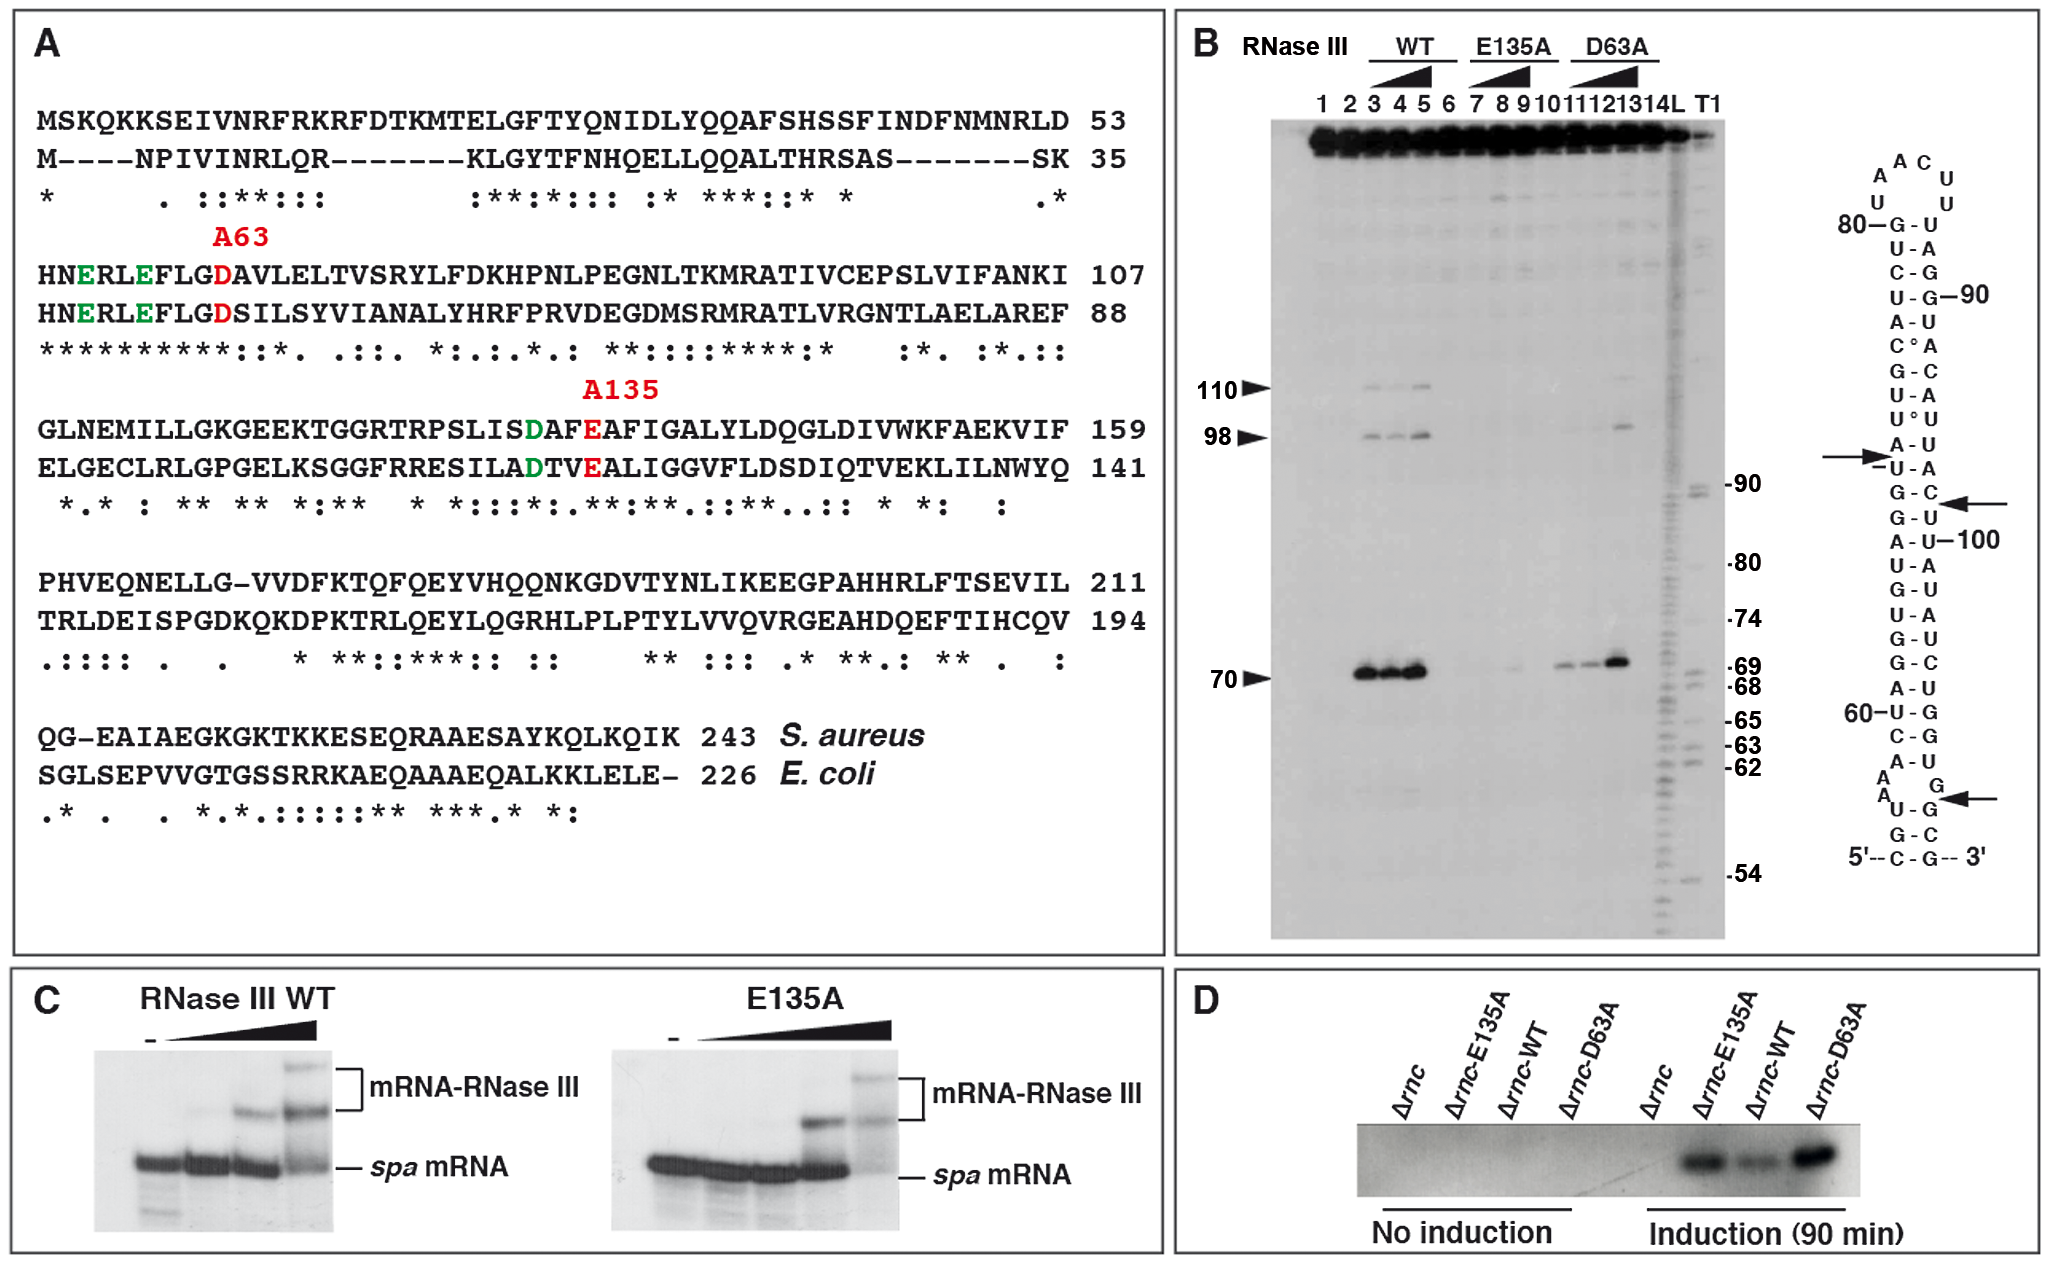 Effect of mutations in the catalytic site of <i>Staphylococcus aureus</i> RNase III.